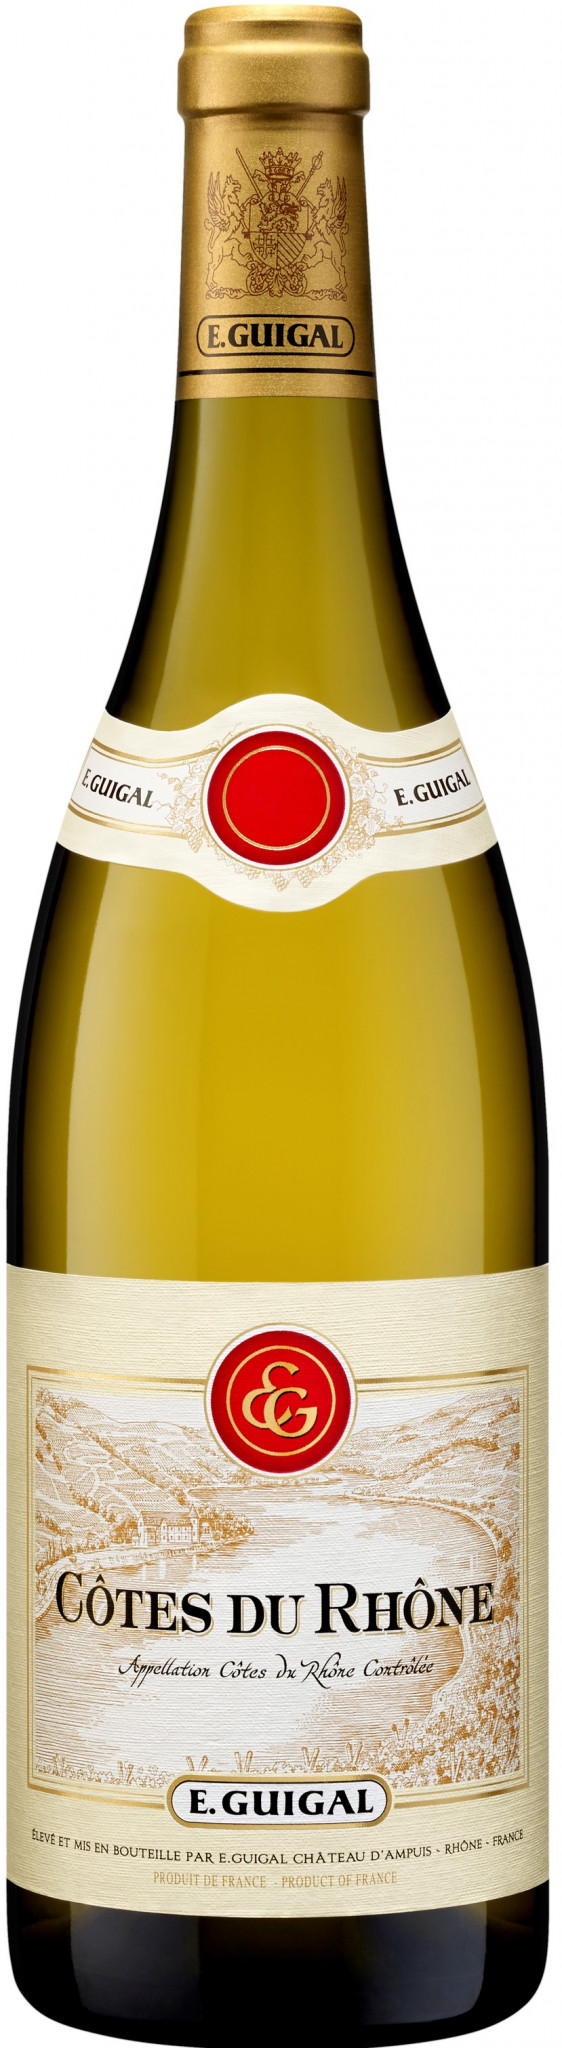 Guigal Cotes du Rhone Blanc Wineaffair